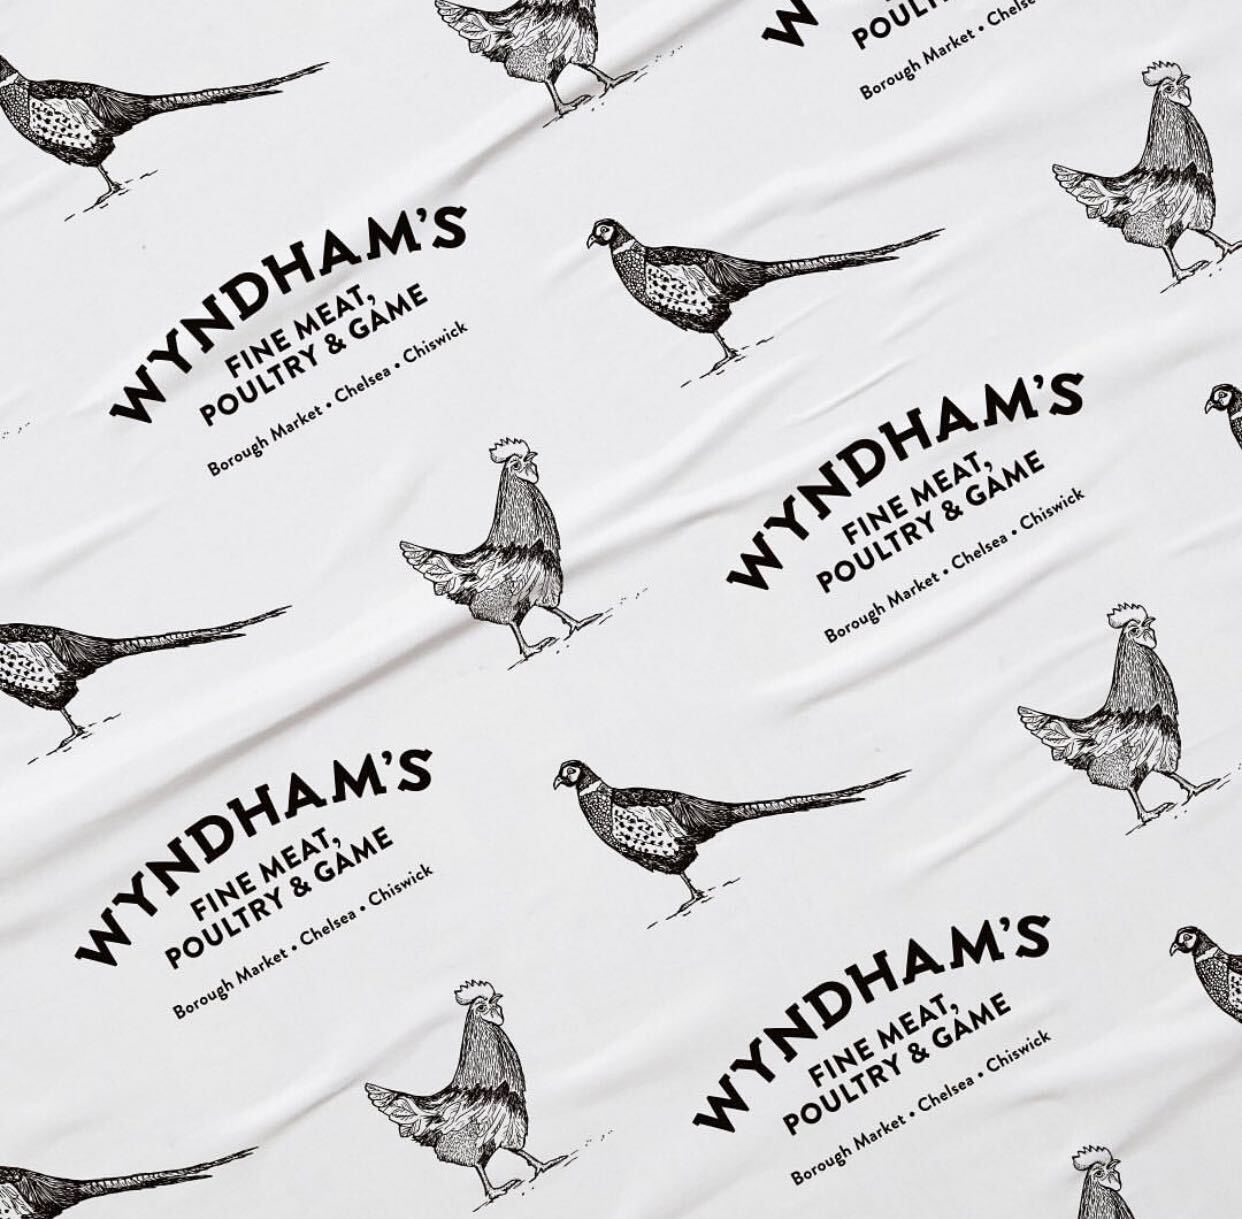 Take a 'Butchers' at the new Wyndham House website